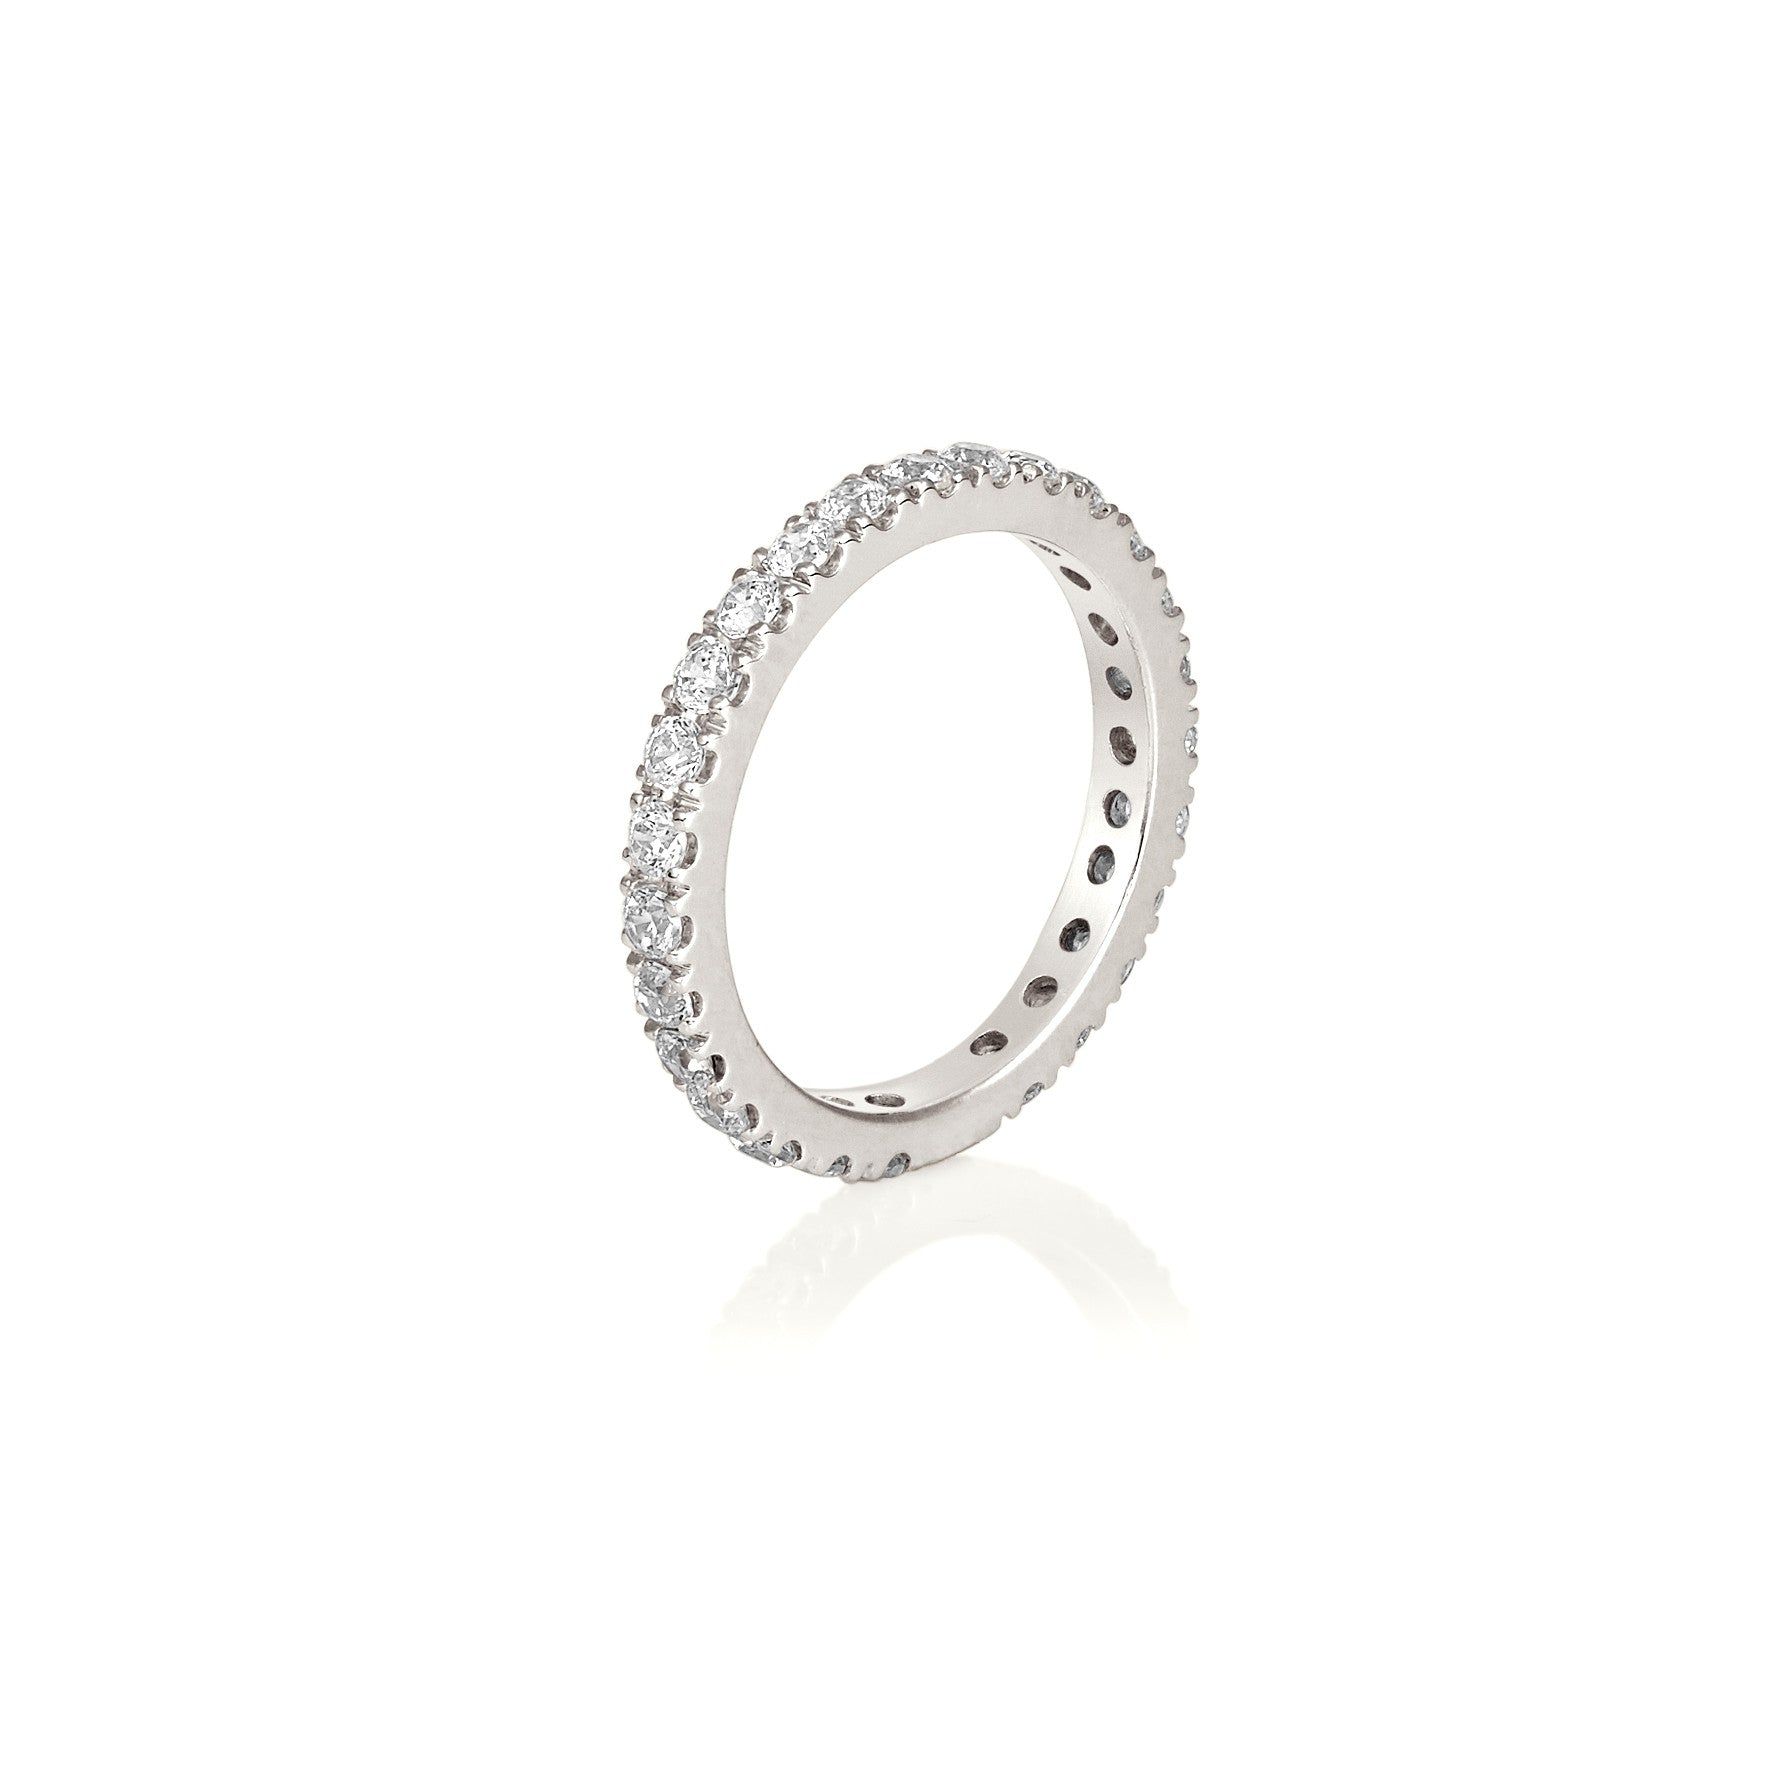 Diamond Eternity Ring - French V Claw Scalloped Setting